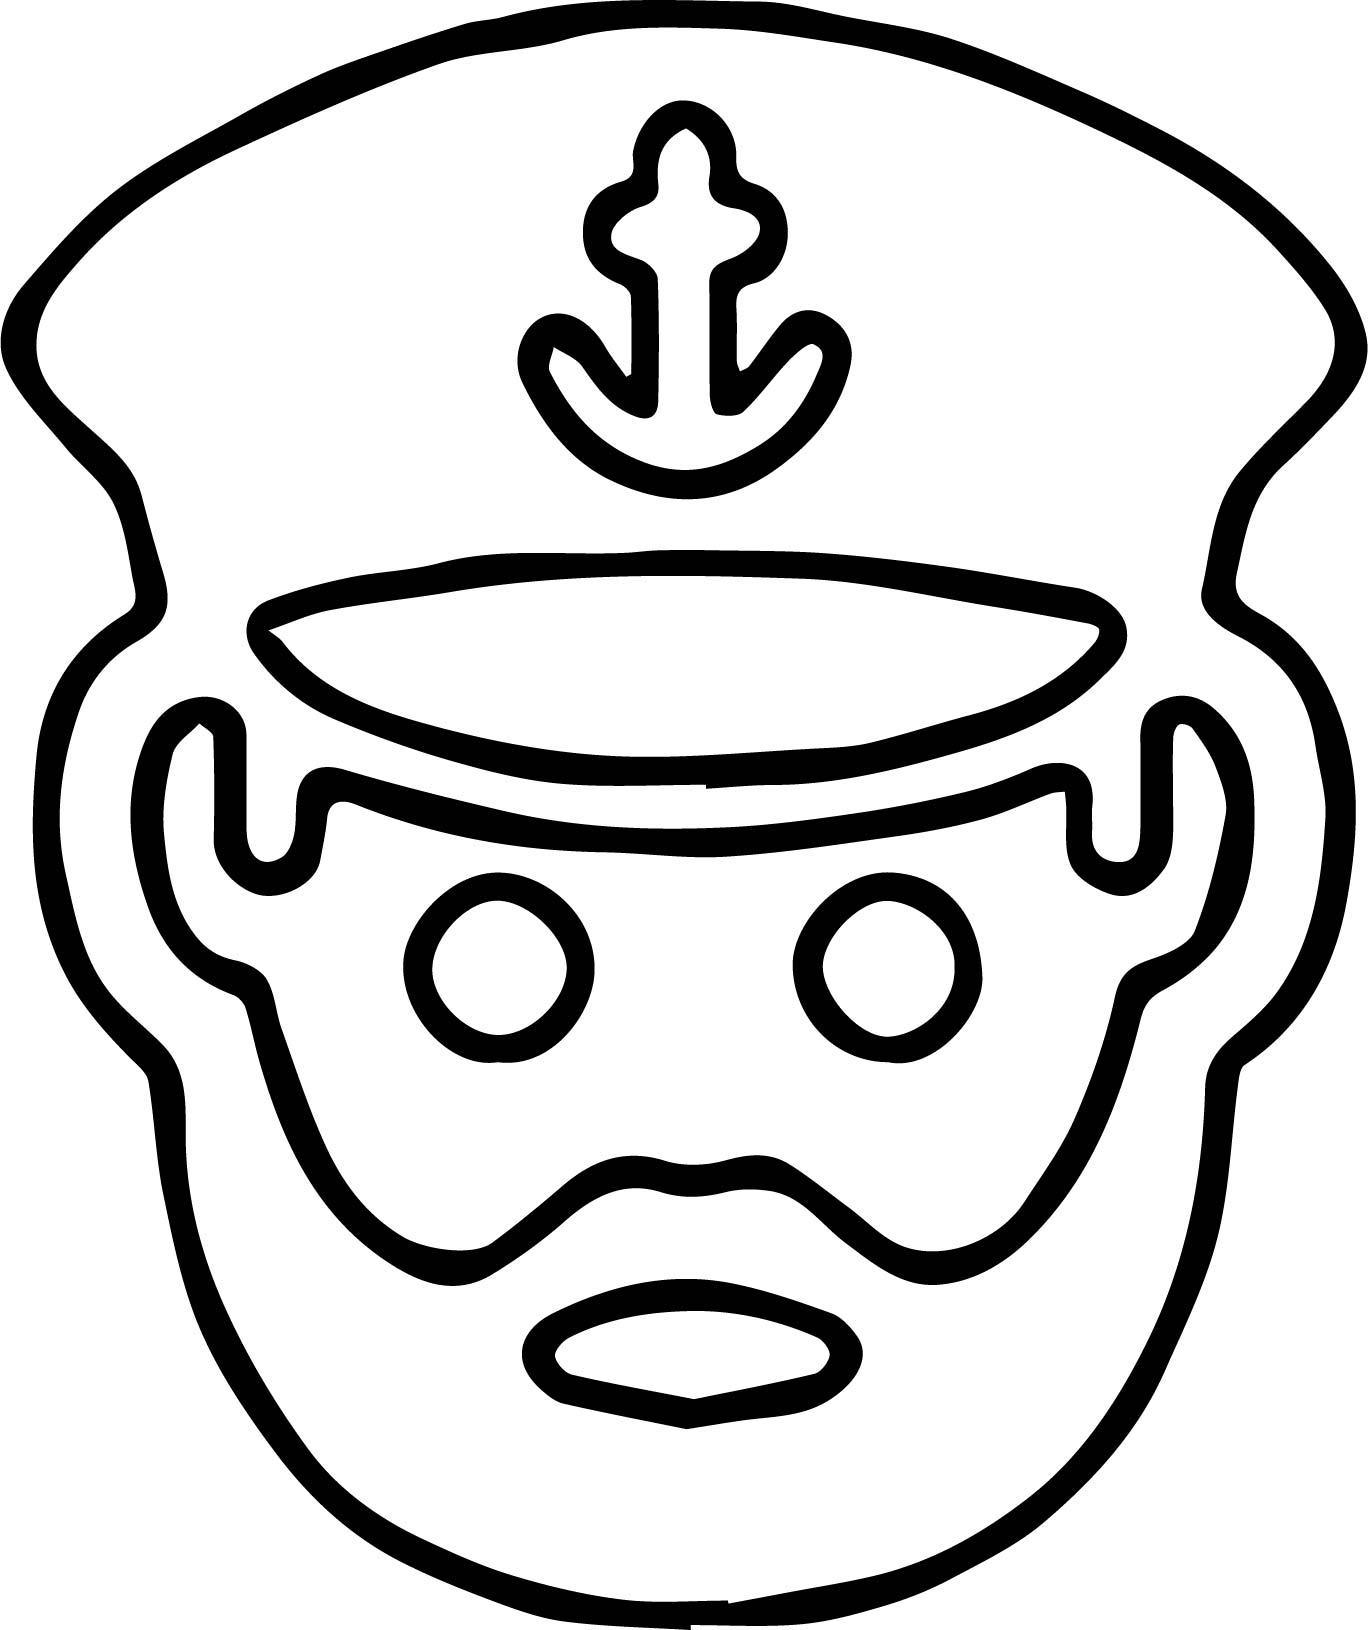 Captain face smiley coloring page for Smiley face coloring pages